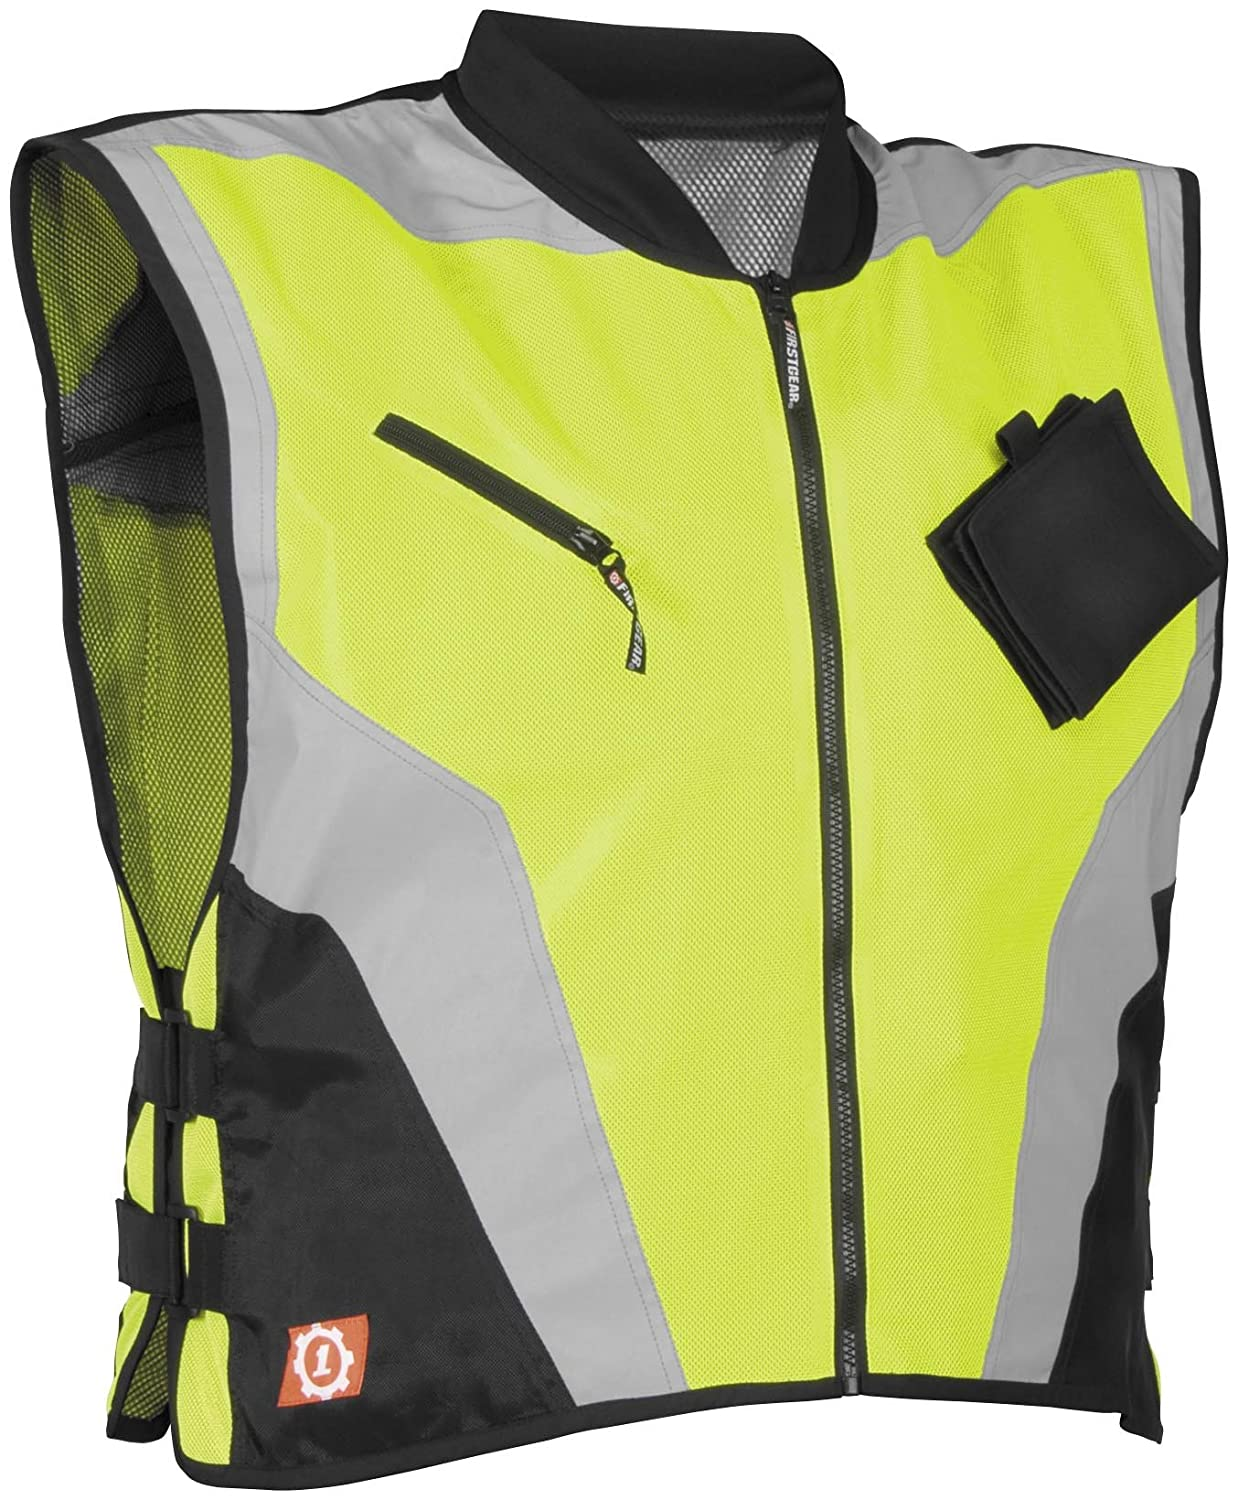 Firstgear Military Spec Vest (DayGlo, Medium/Large) 512950